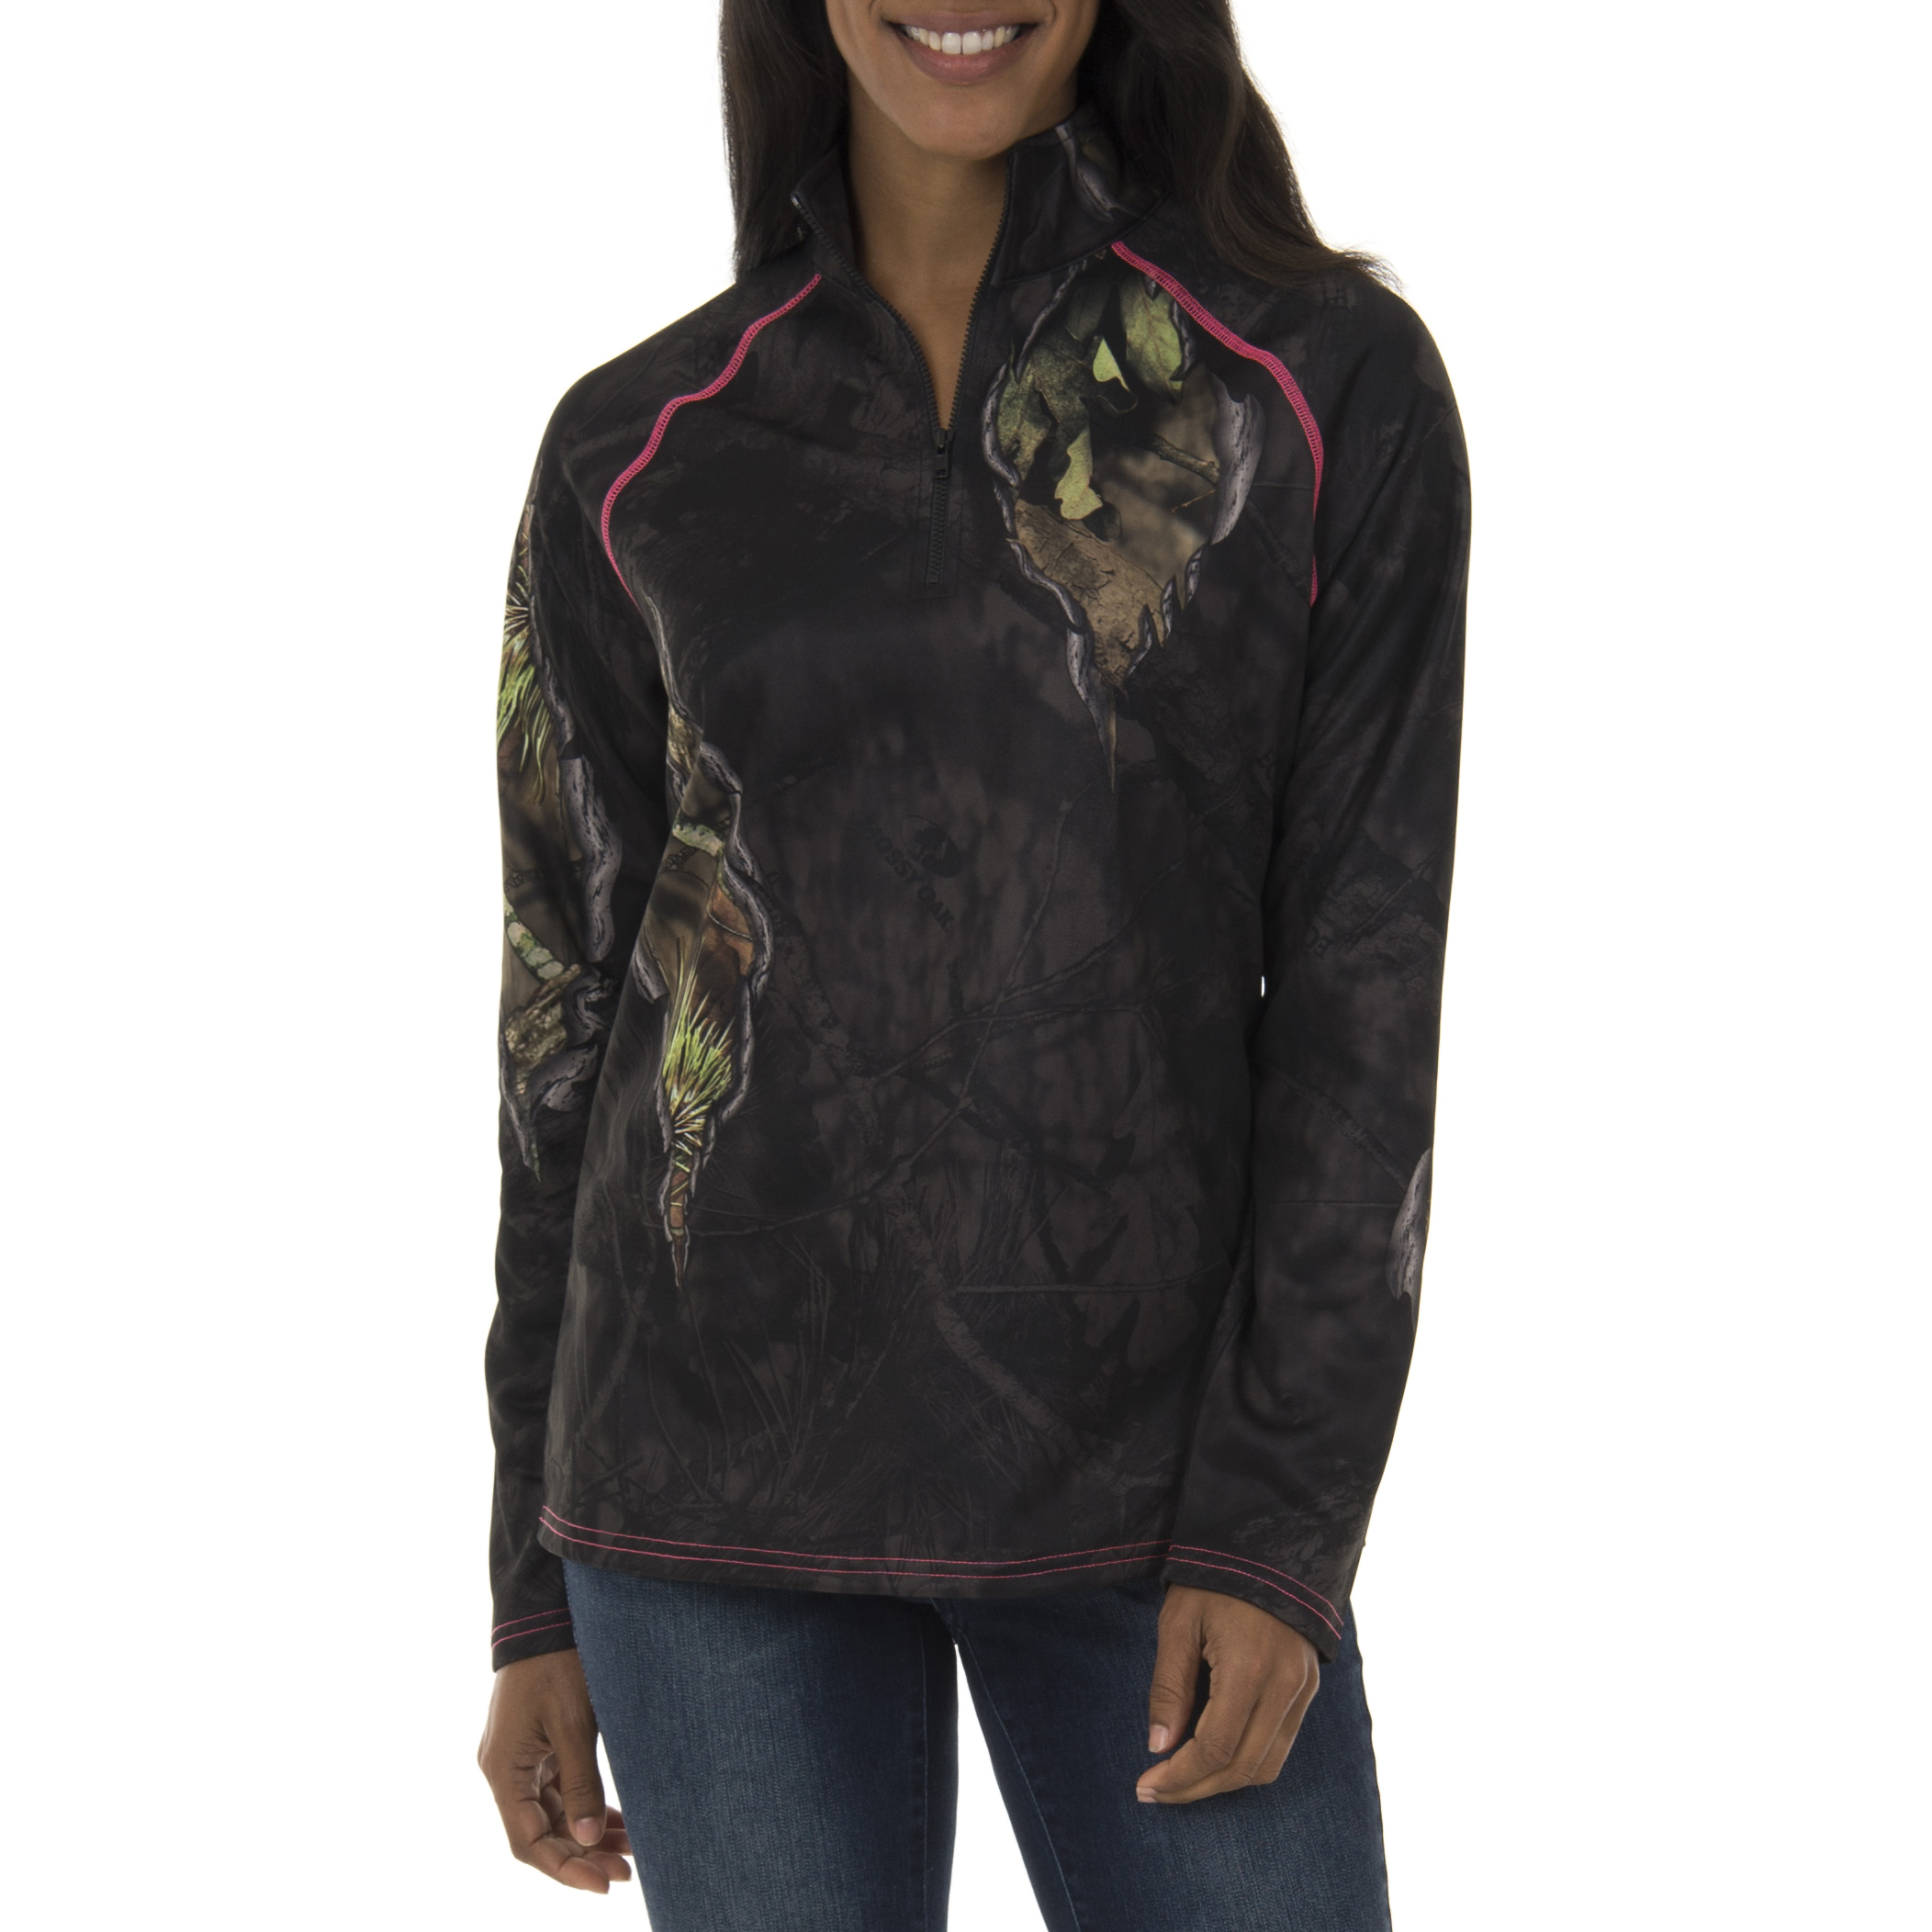 Realtree & Mossy Oak Women's Fleece Performance Camo 1 4 Zip Jacket by INTRADECO